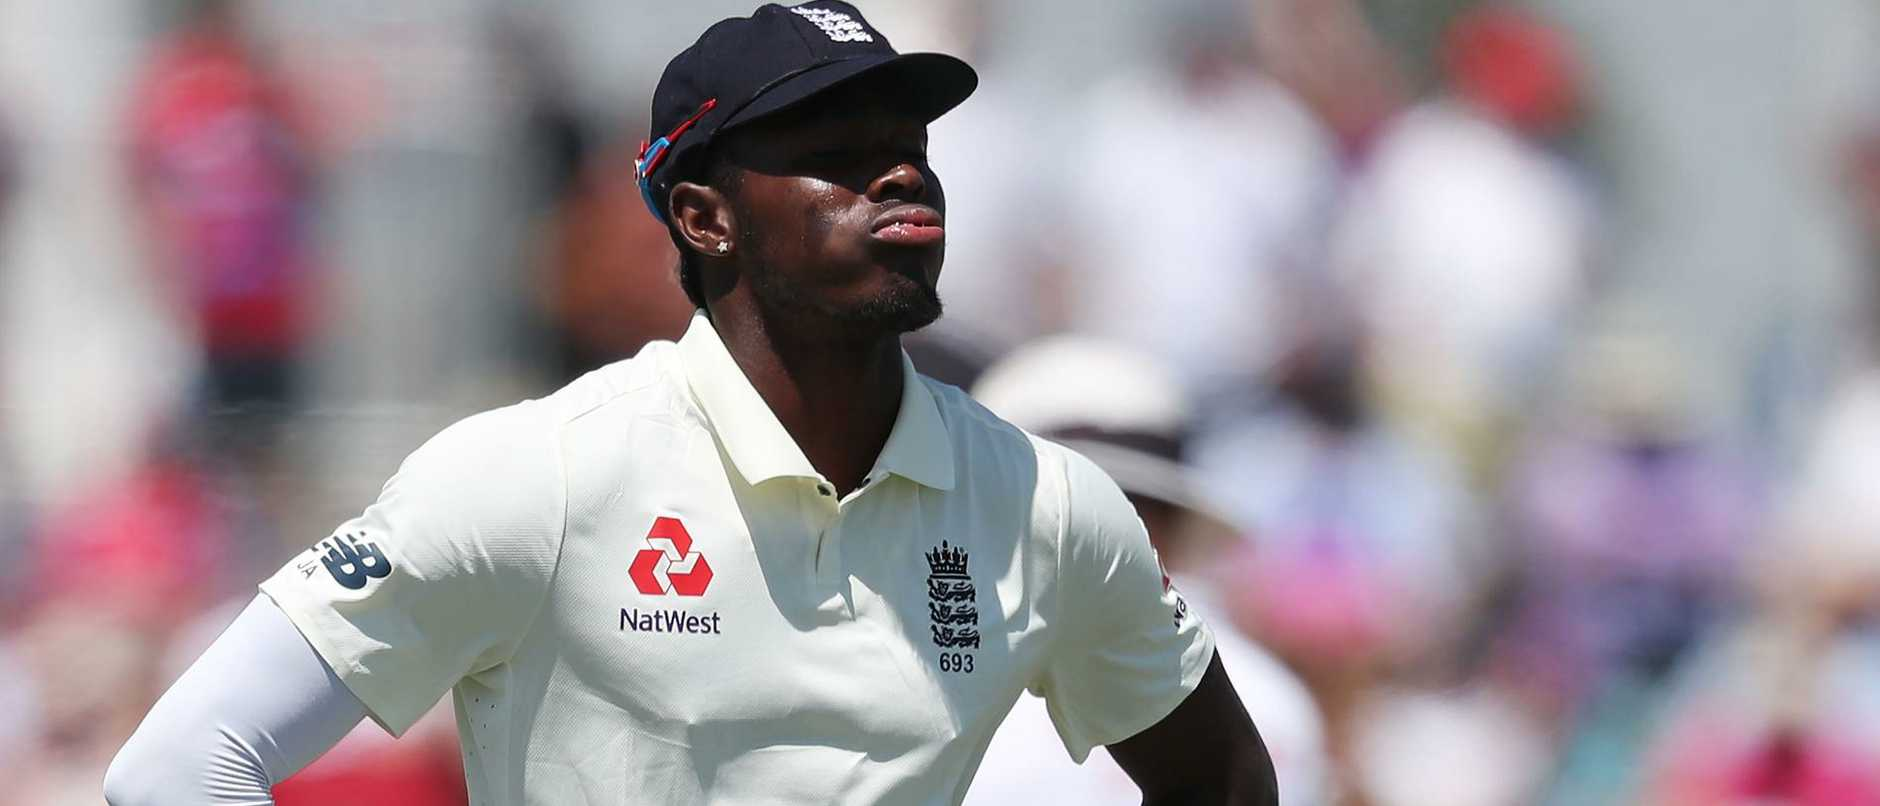 Jofra Archer has been racially abused on more than one occasion.